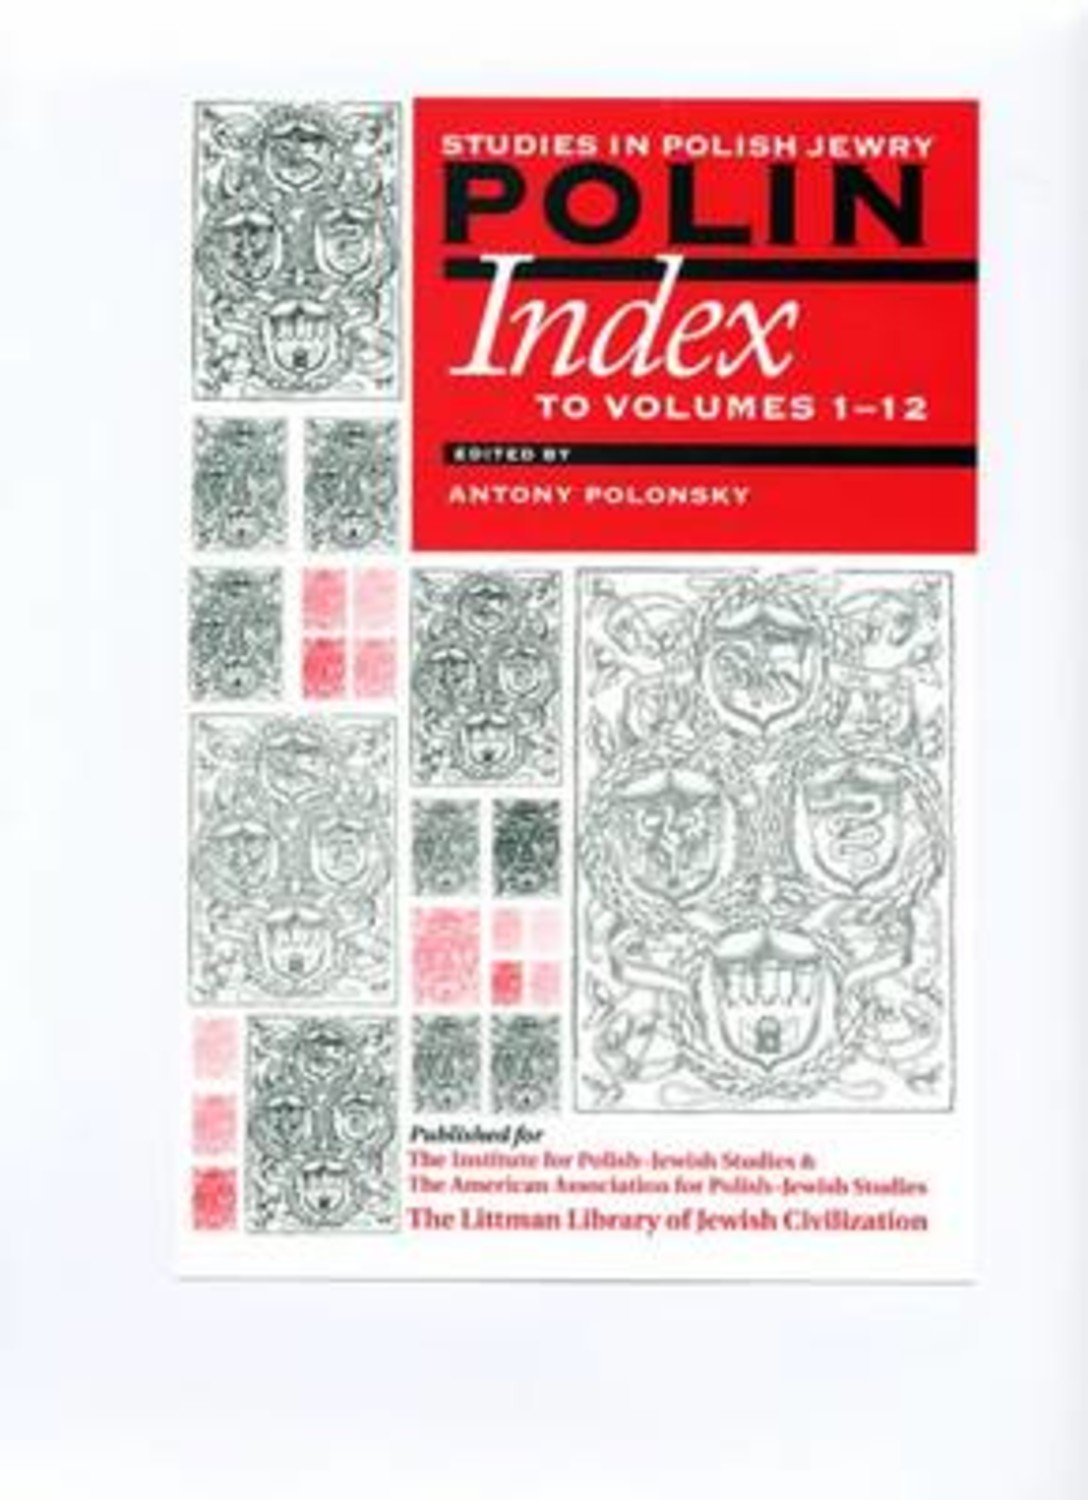 Polin: Studies in Polish Jewry: Index to Volumes 1-12